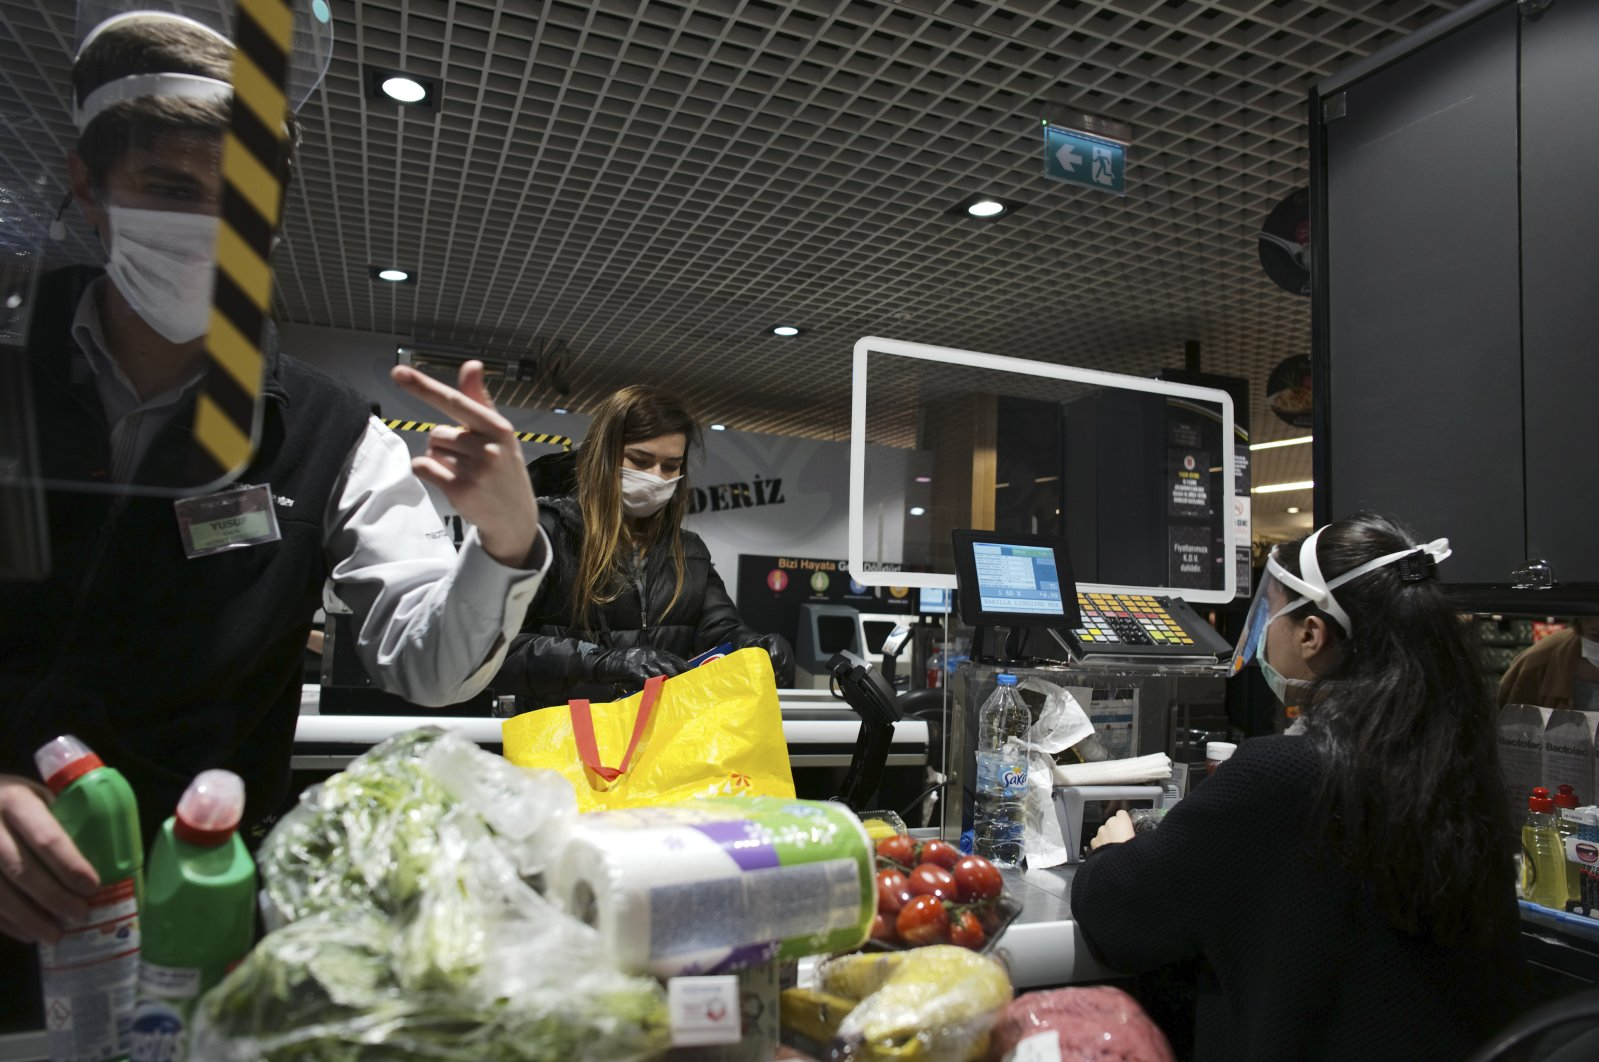 People wearing face masks shop for food at a market during the coronavirus outbreak, Ankara, Turkey, April 21, 2020. (AP Photo)